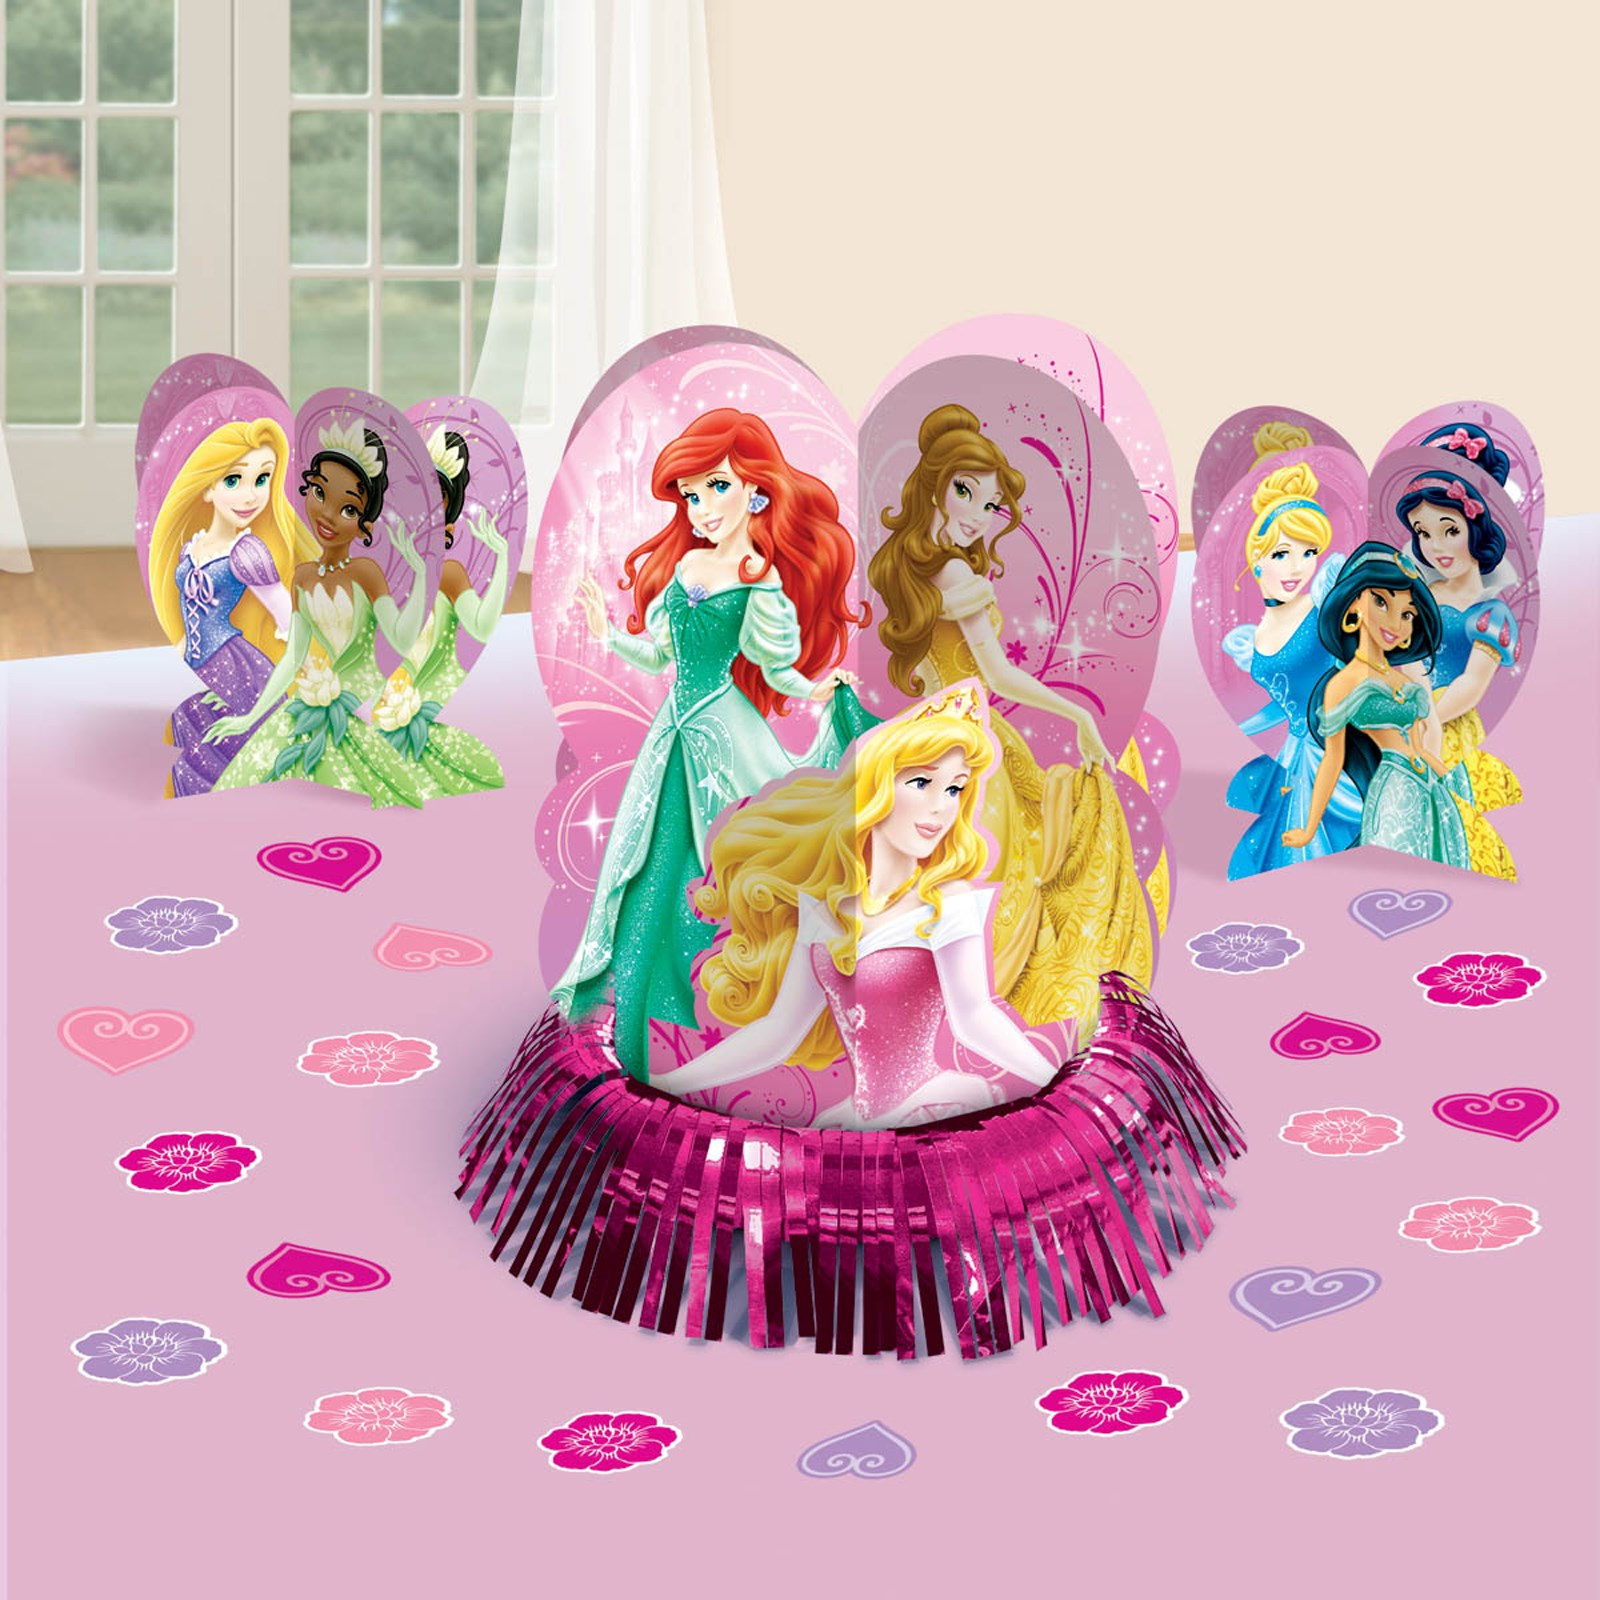 Disney Very Important Princess Dream Party Tabletop Decorations